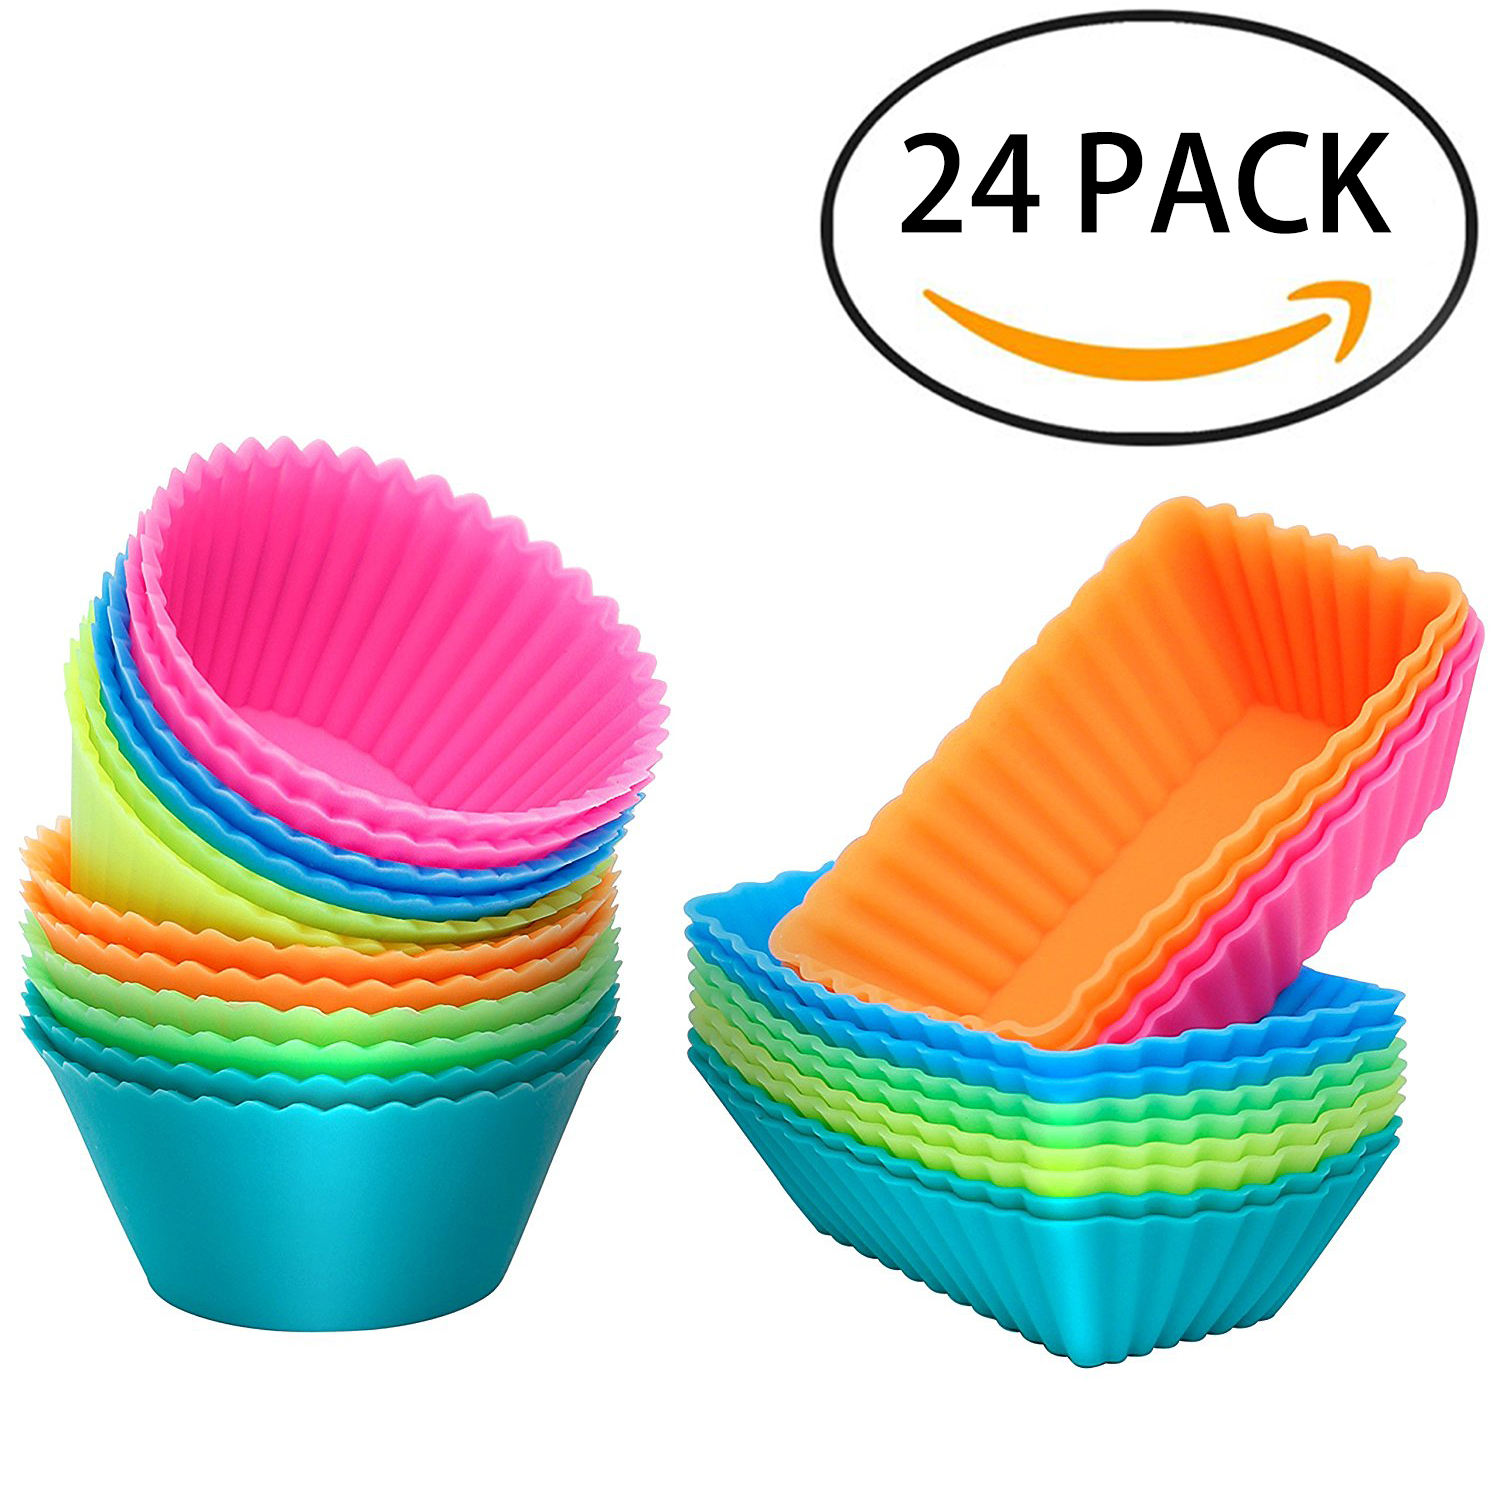 IPOW 24pcs Silicone Cupcake Liners Reusable Baking Cups Nonstick Easy Clean Pastry Muffin Molds, Rainbow Color